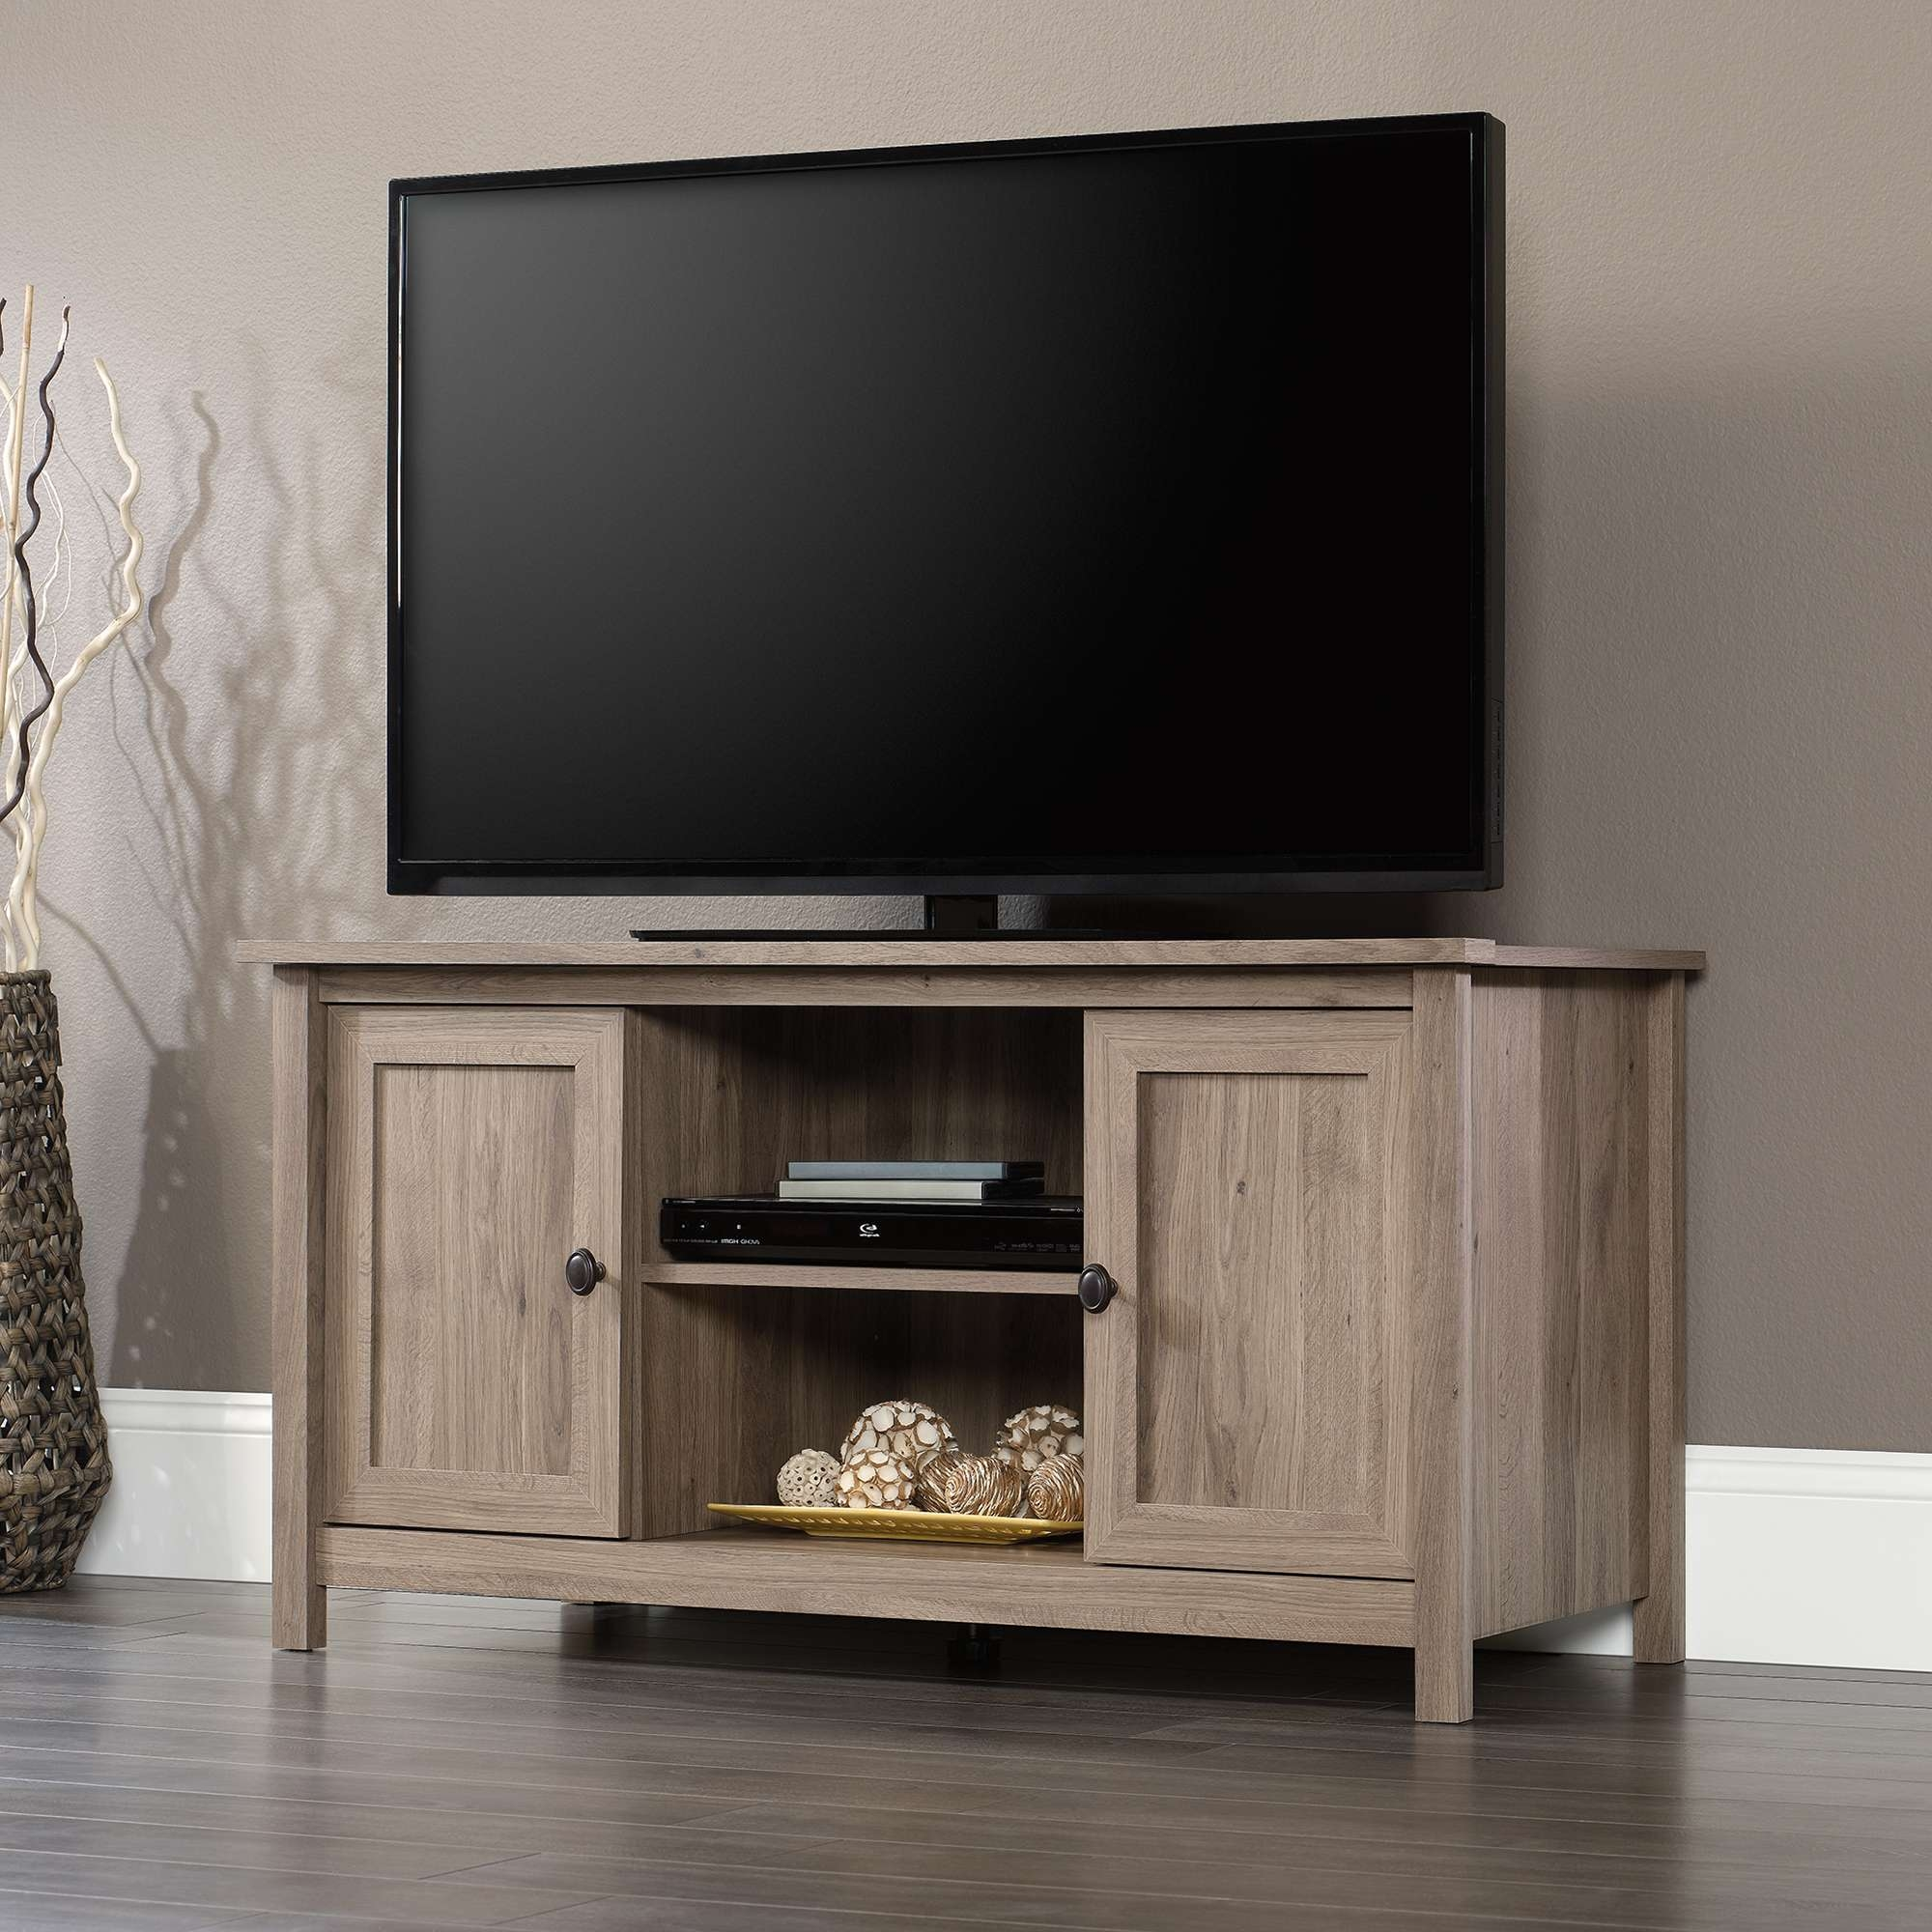 Awesome Salt Oak Furniture Tv Stand Model Stair Railings Fresh In Throughout Oak Furniture Tv Stands (View 1 of 20)